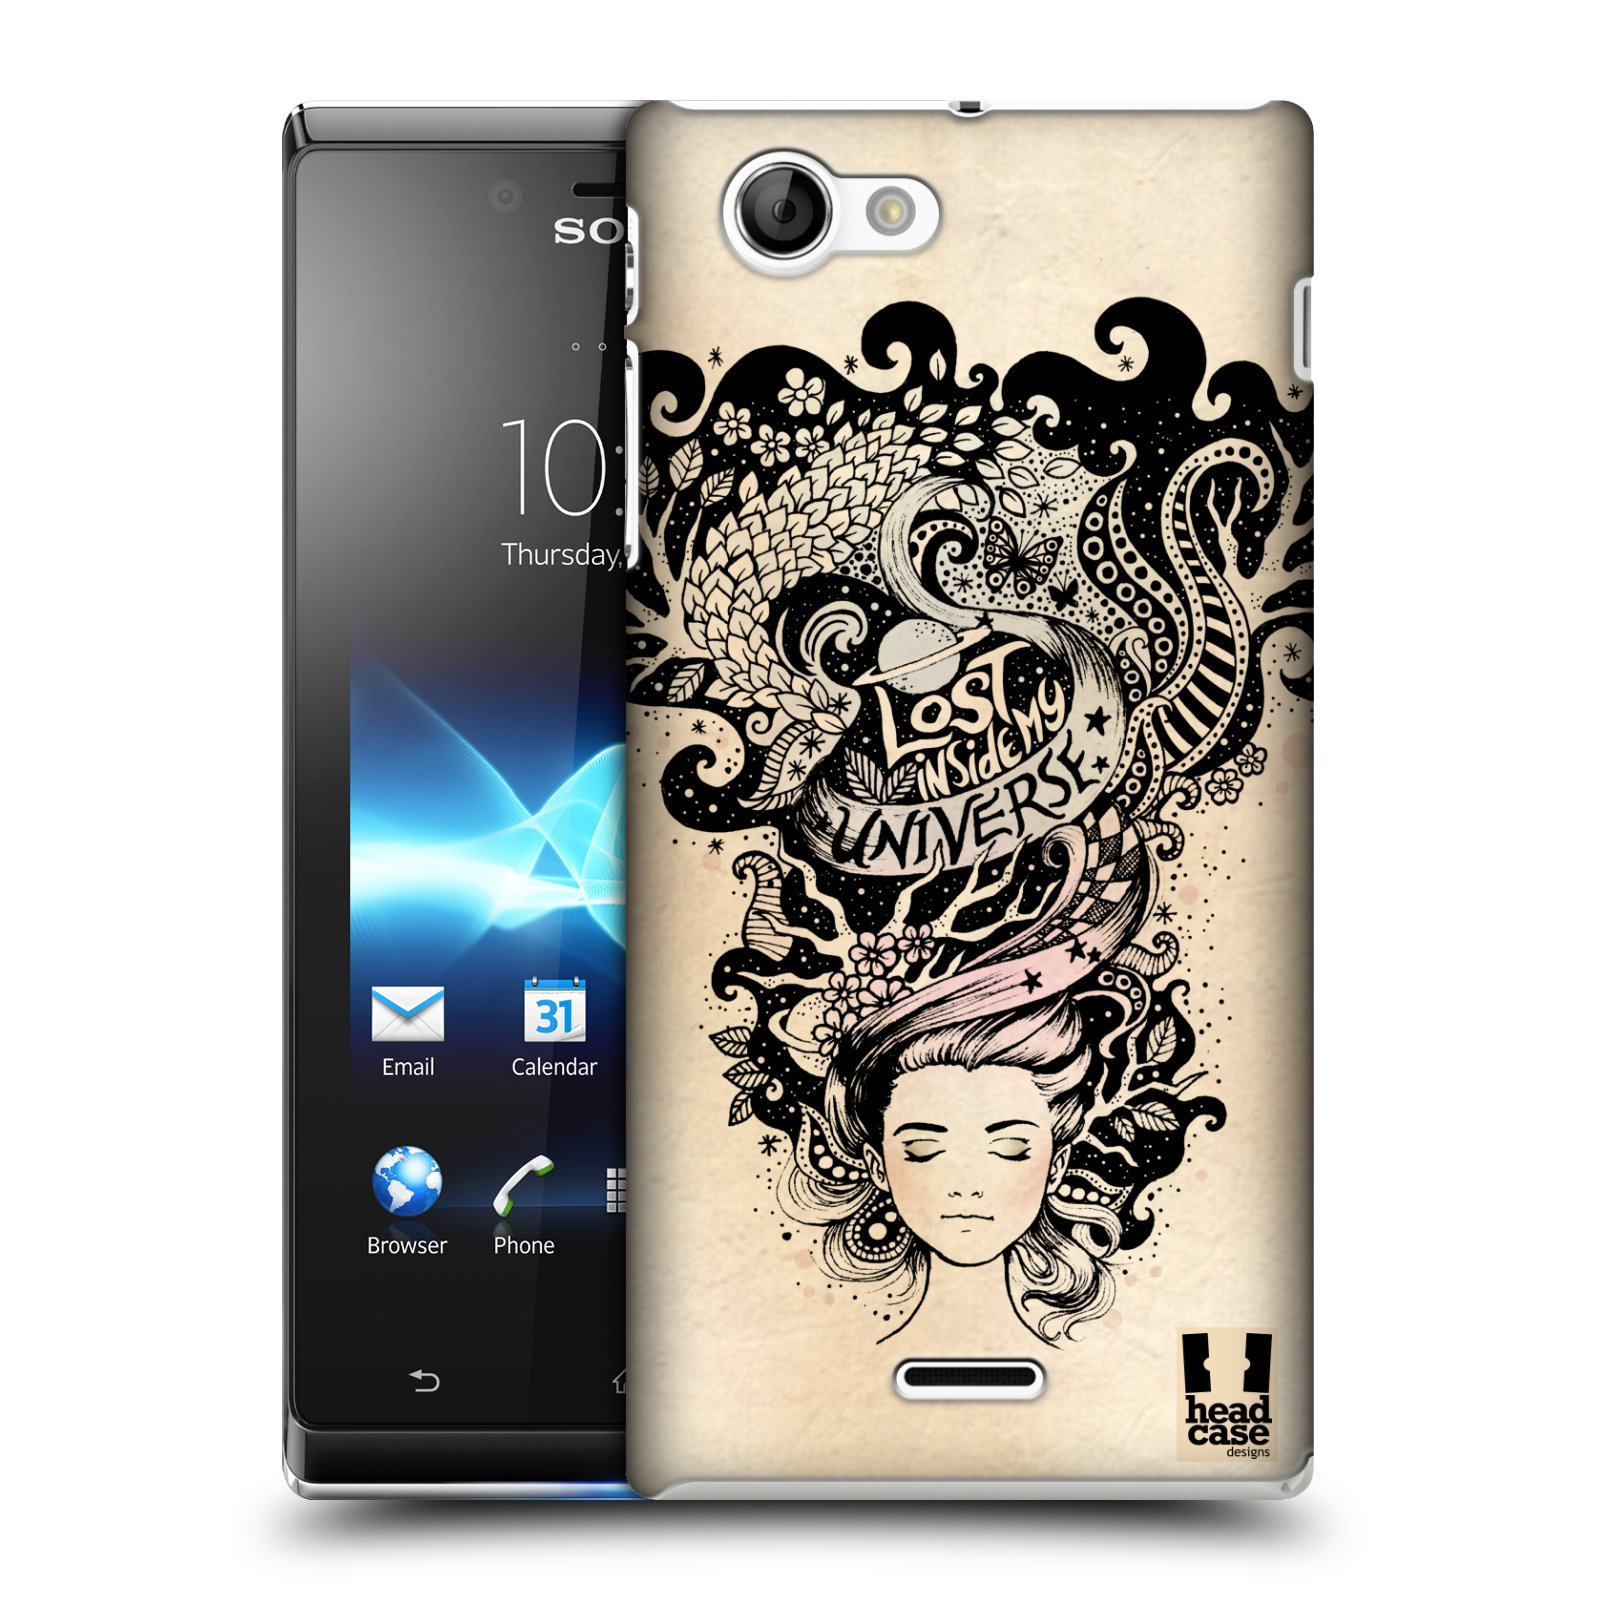 HEAD CASE DESIGNS INTROSPECTION CASE COVER FOR SONY XPERIA J ST26i